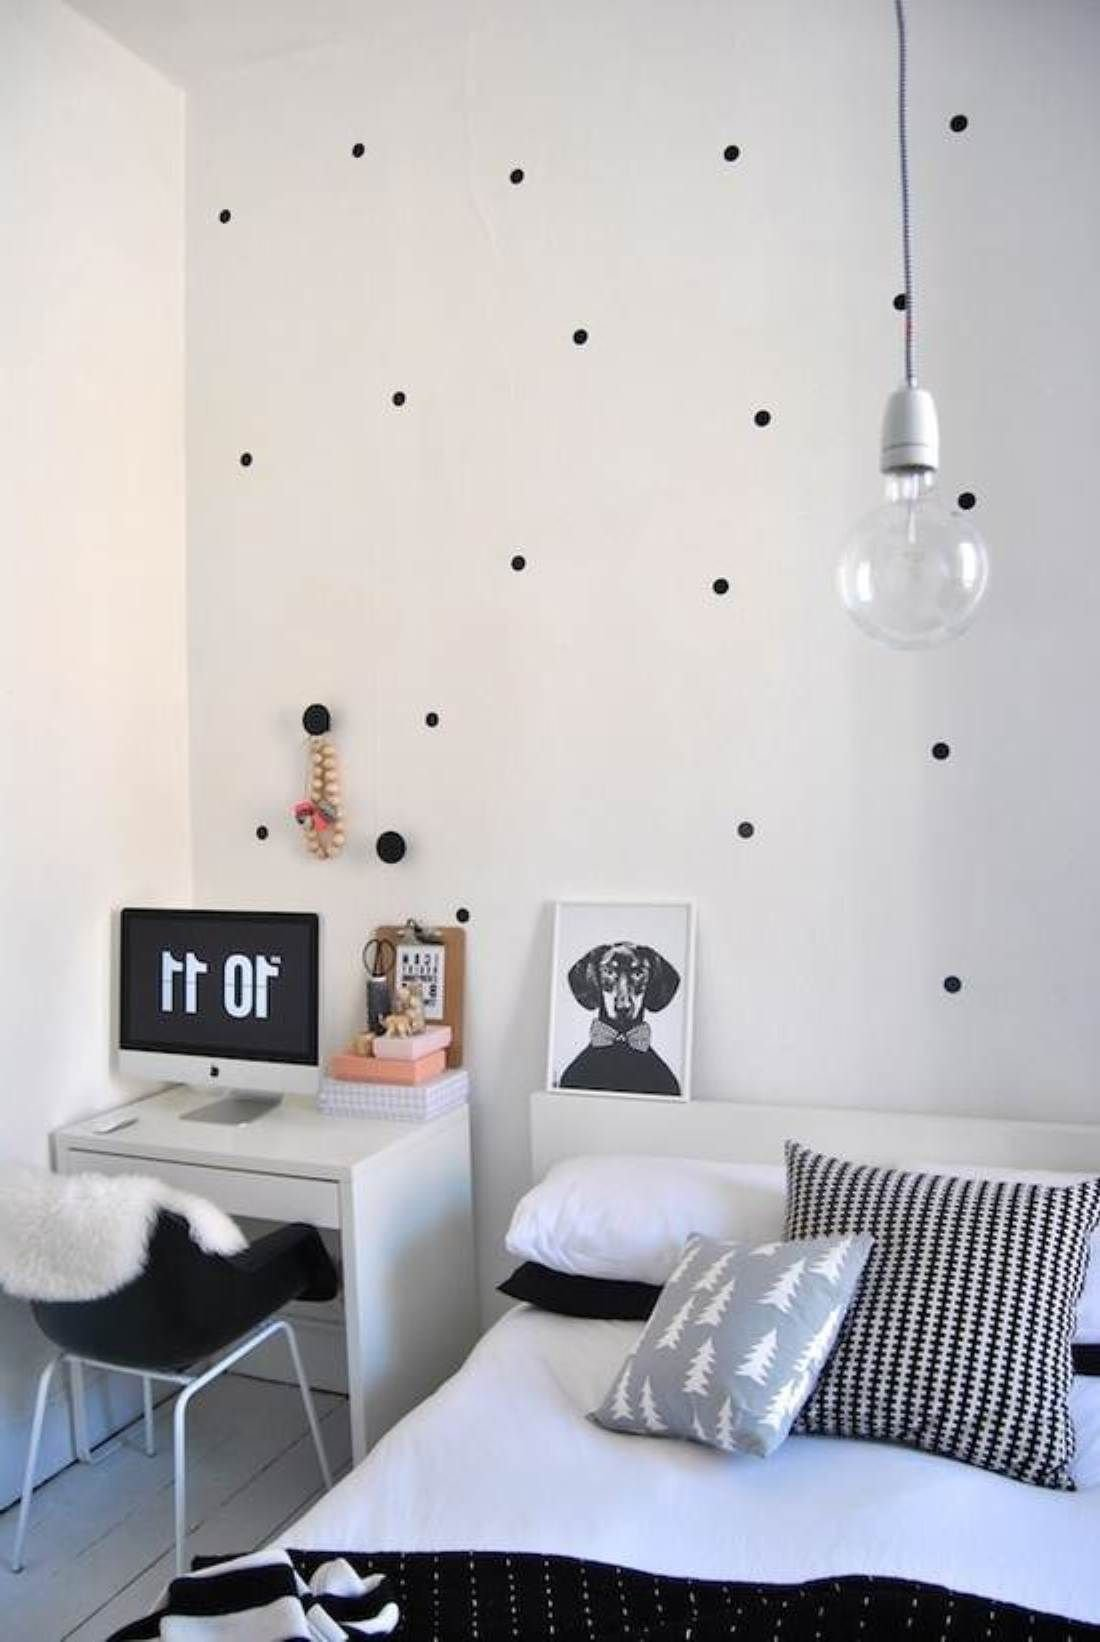 Best Black White Simple Bedroom Decorating Ideas For Young Women Karlitas Casita Pinterest With Pictures